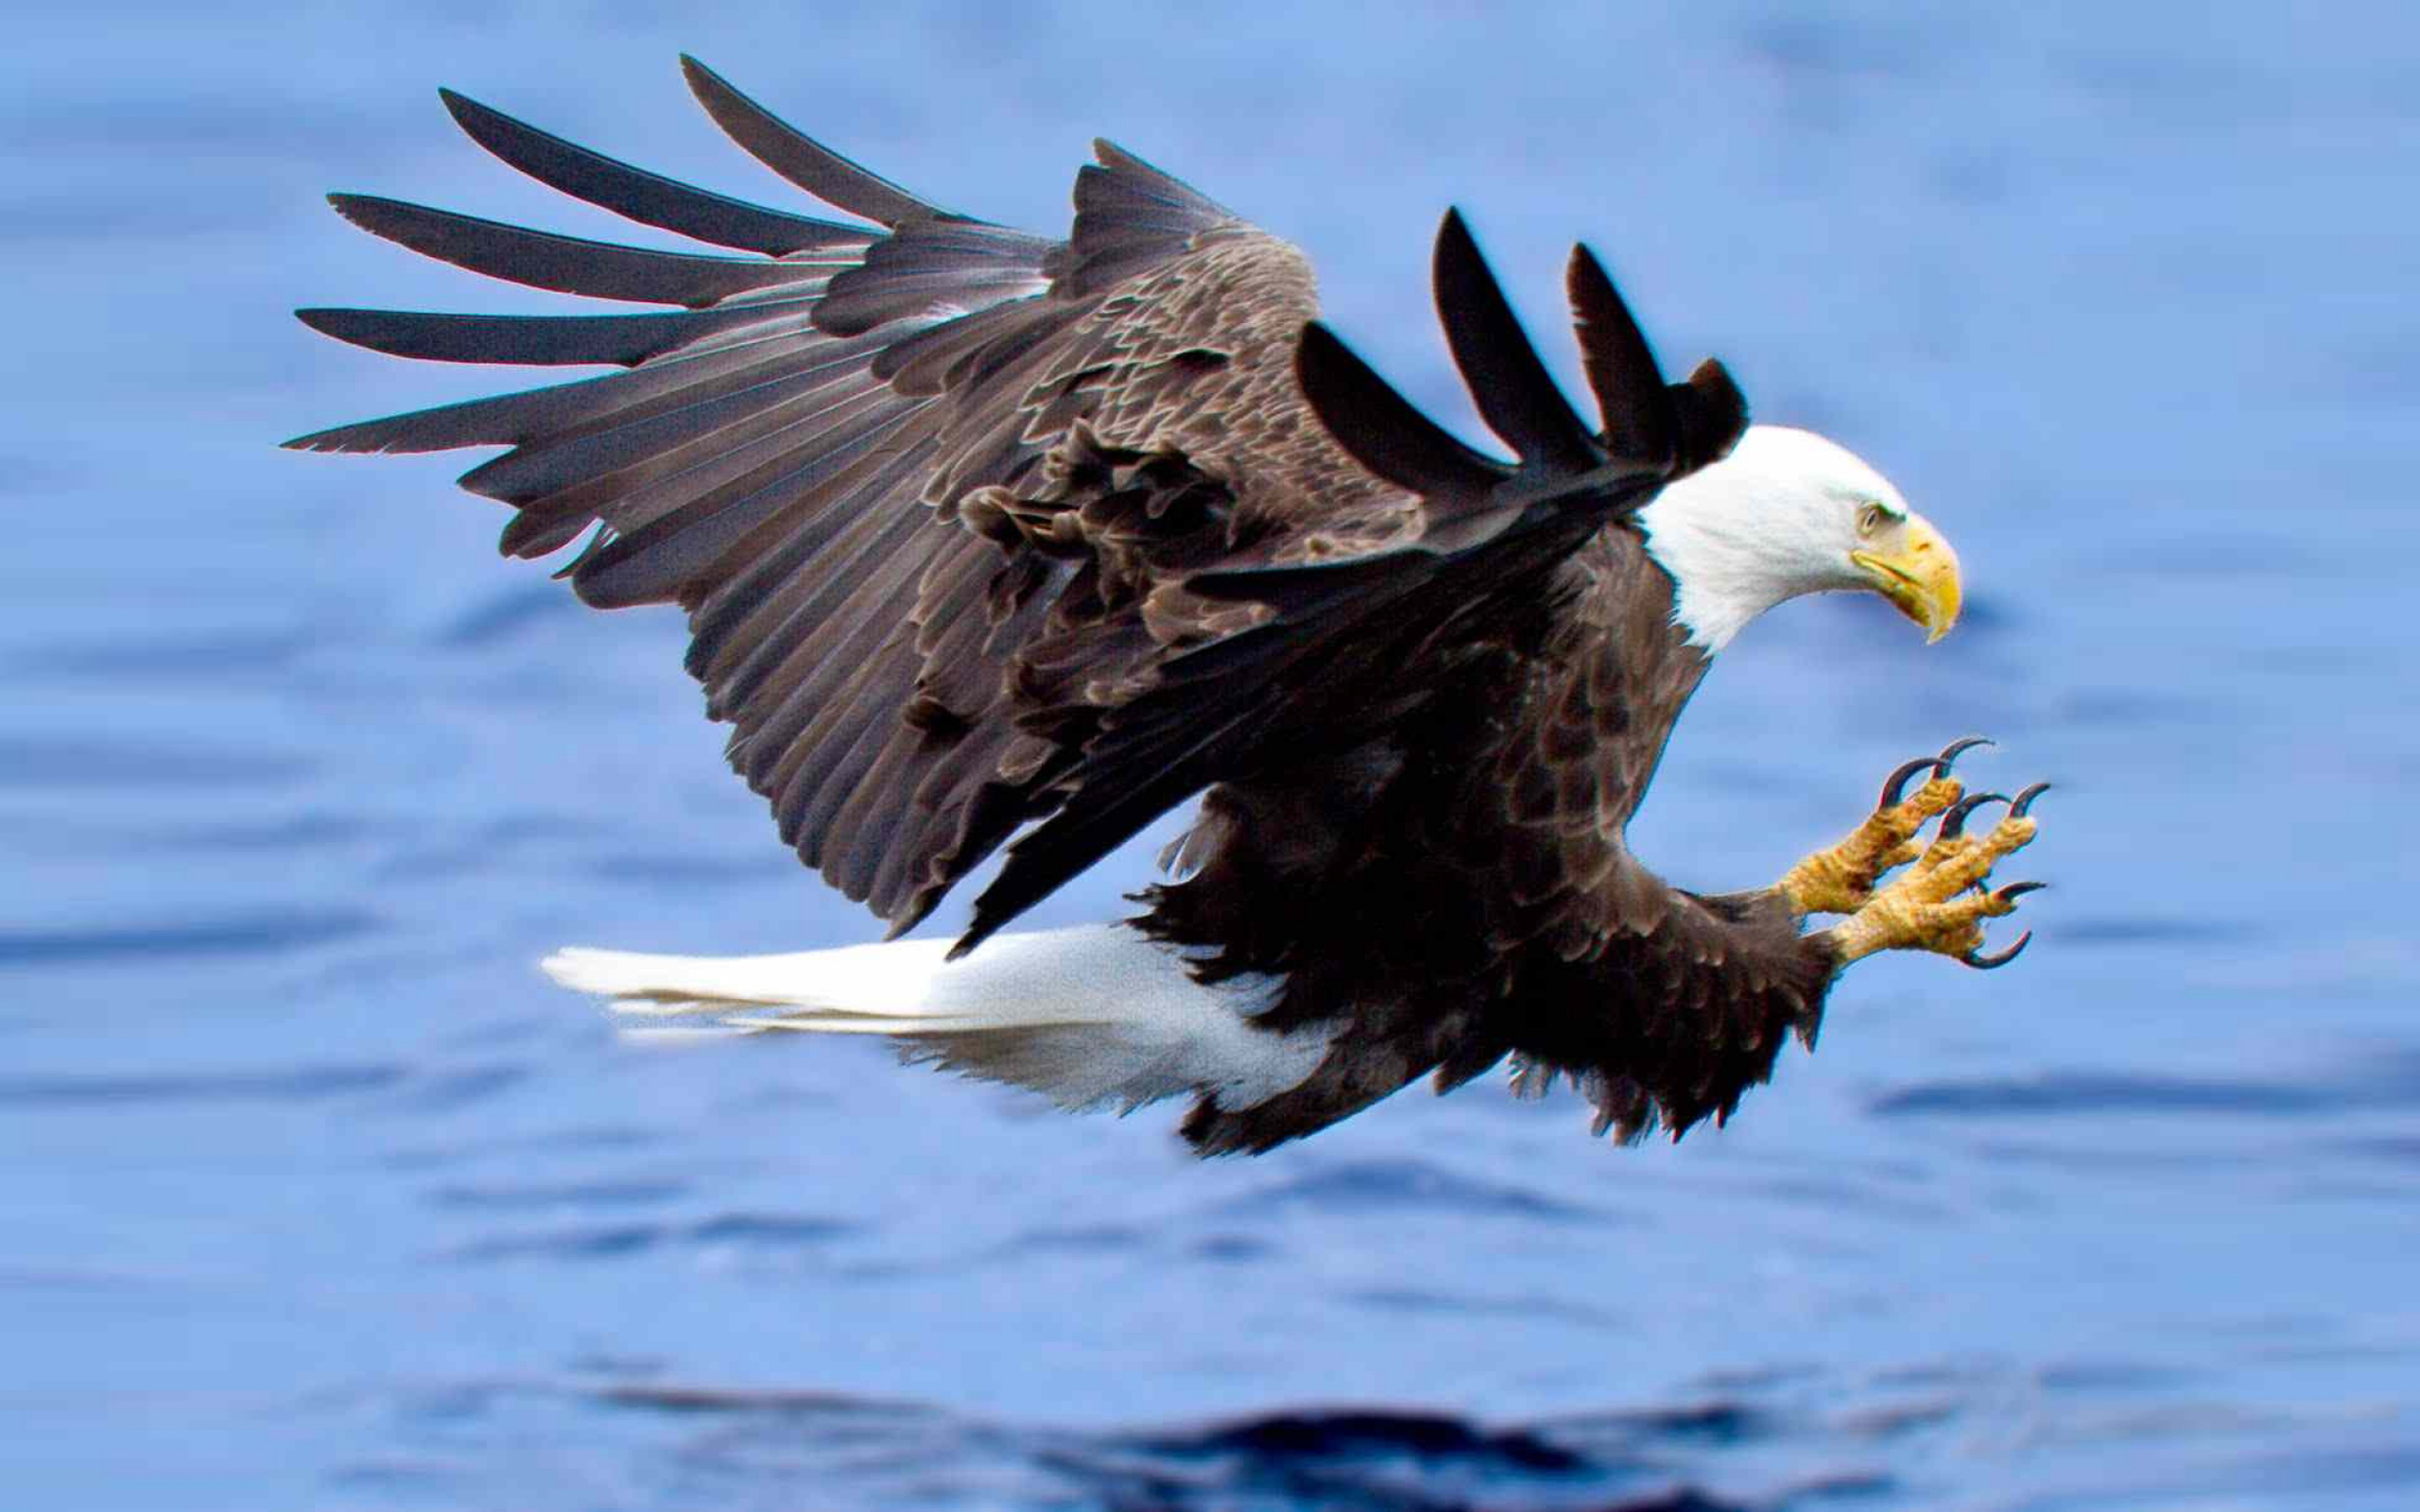 American Flag Wallpaper Hd Attack Of The Bald Eagle Hunting For Fish In The Lake